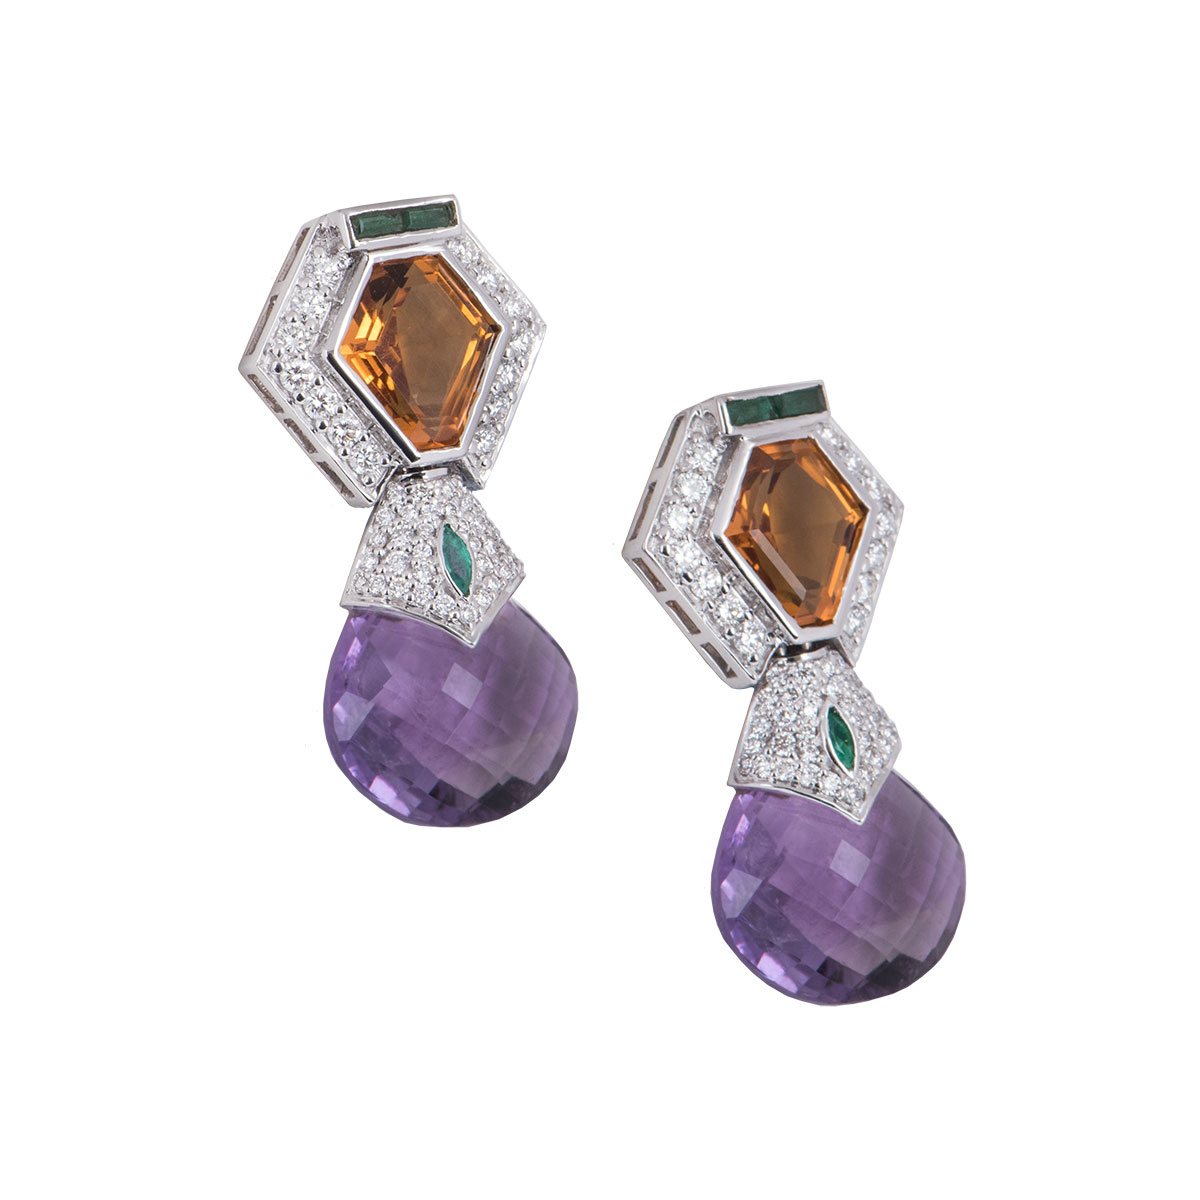 White Gold Diamond, Amethyst And Citrine Earrings